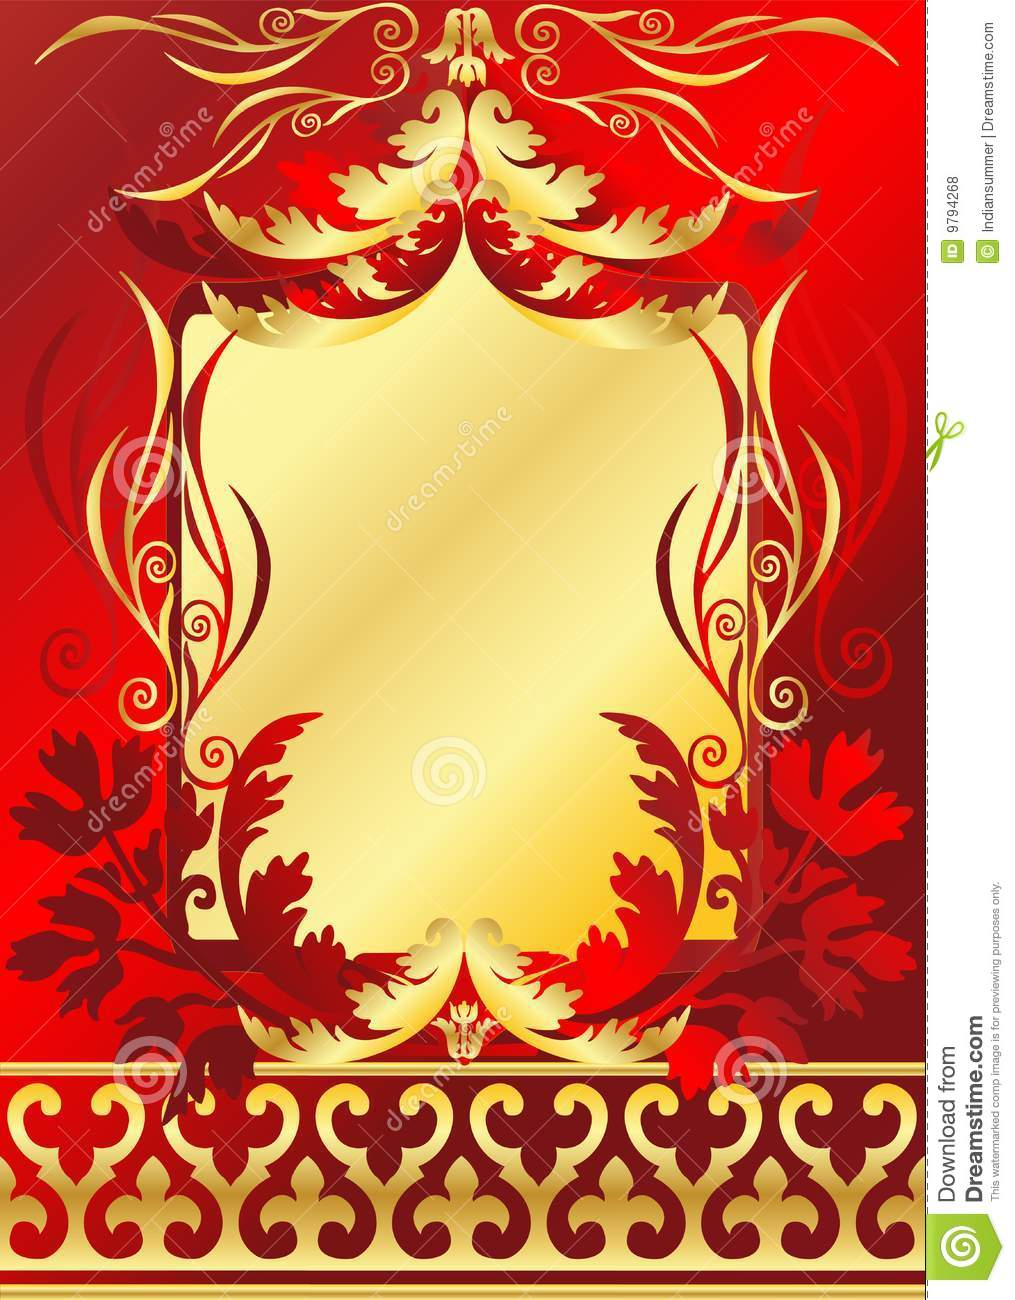 Red And Gold Frame Royalty Free Stock Photos - Image: 9794268